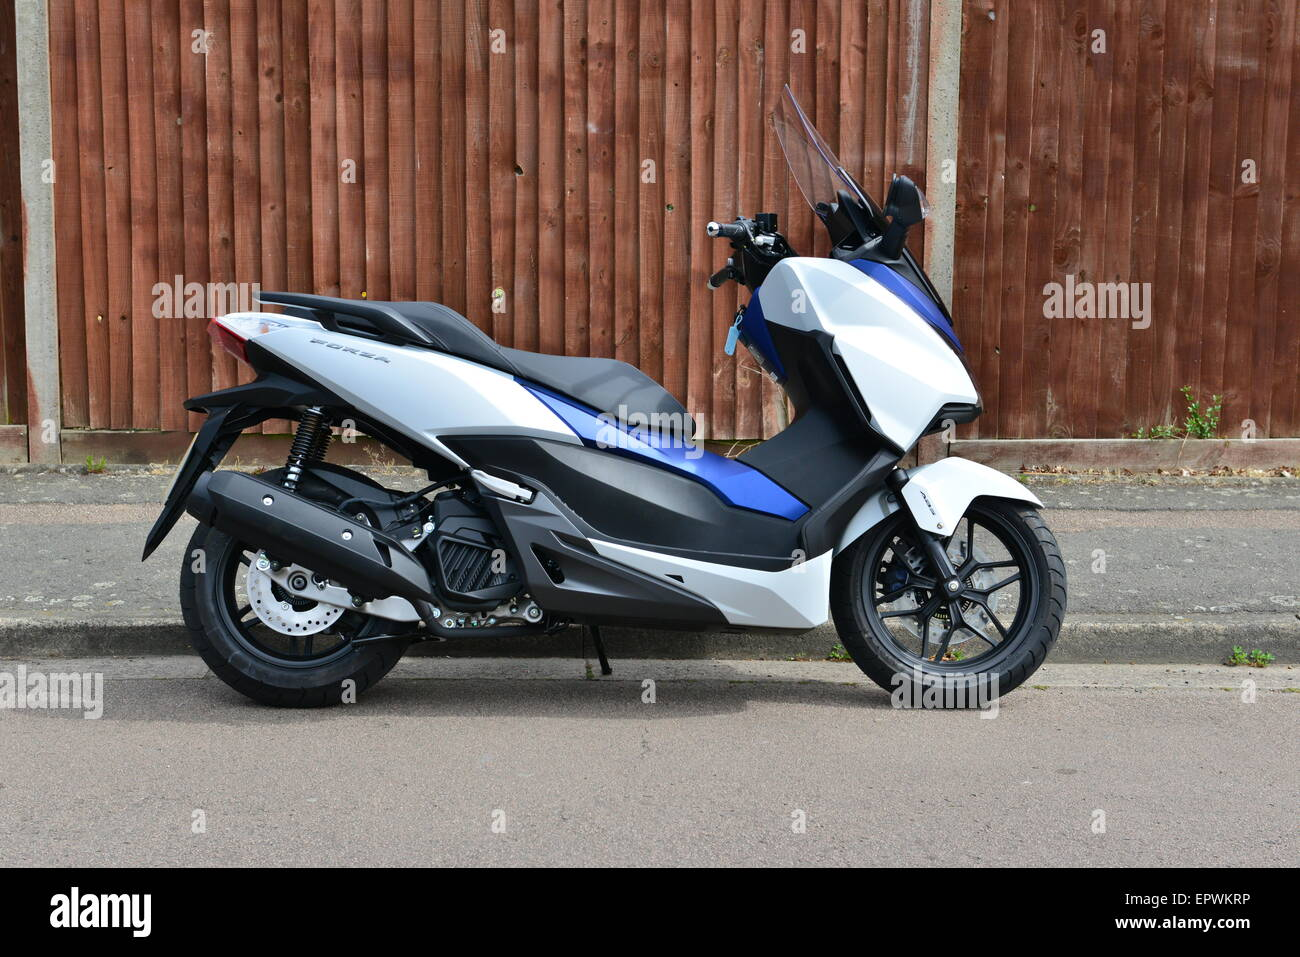 honda forza 125 scooter stock photo royalty free image 82928266 alamy. Black Bedroom Furniture Sets. Home Design Ideas